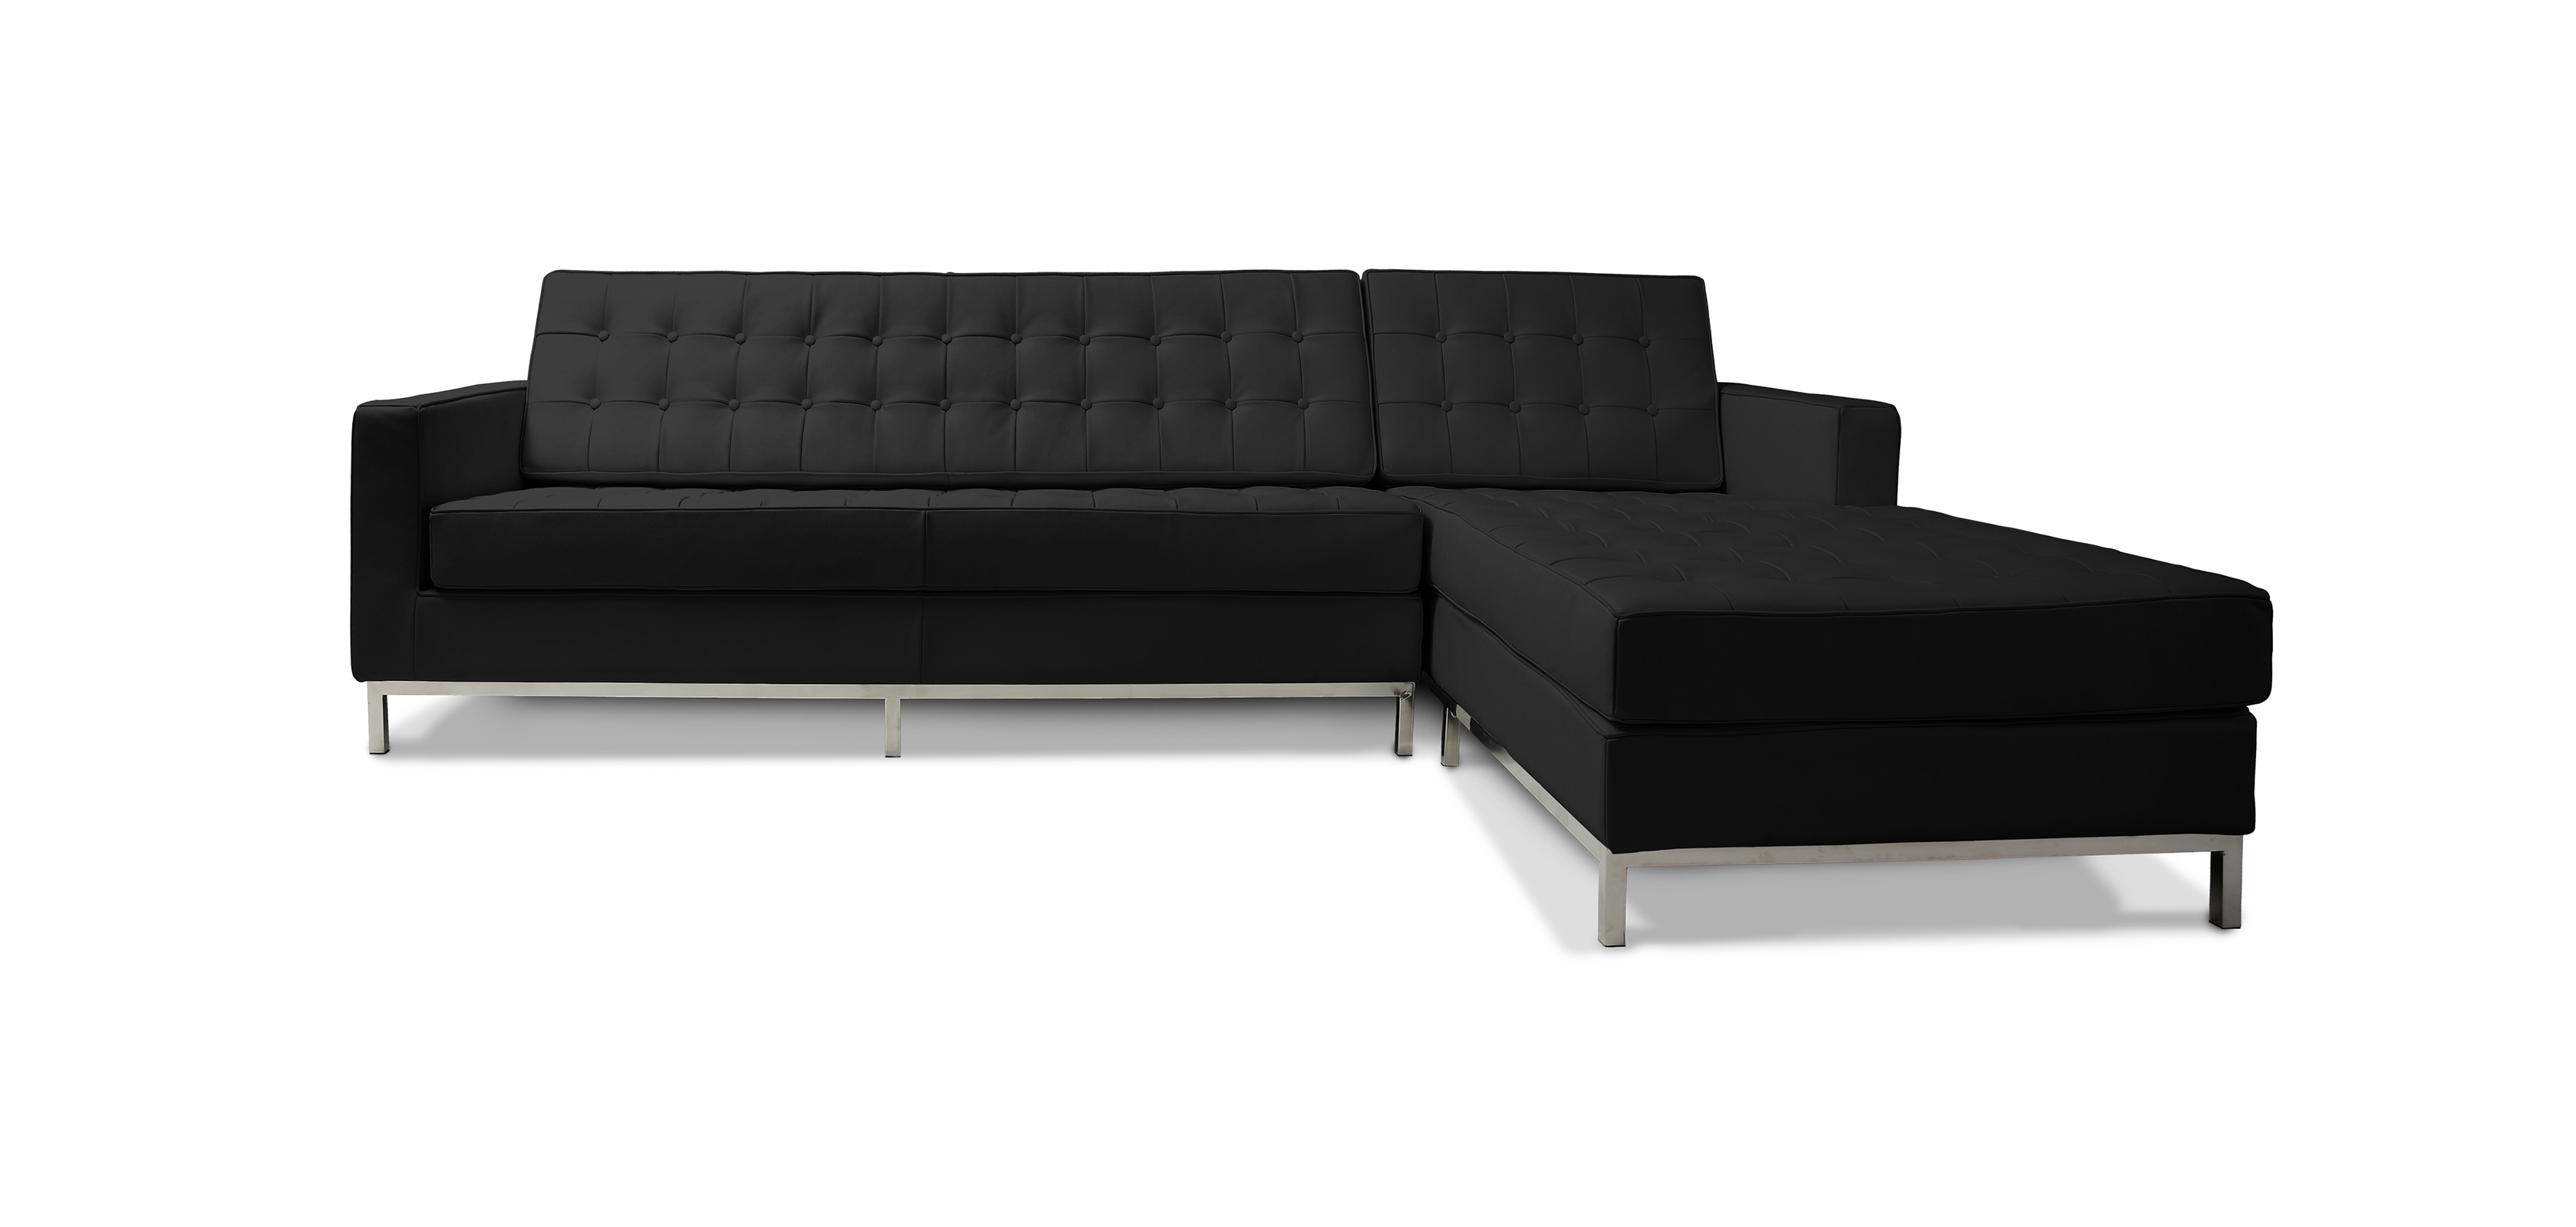 design ecksofa florence knoll kunstleder. Black Bedroom Furniture Sets. Home Design Ideas